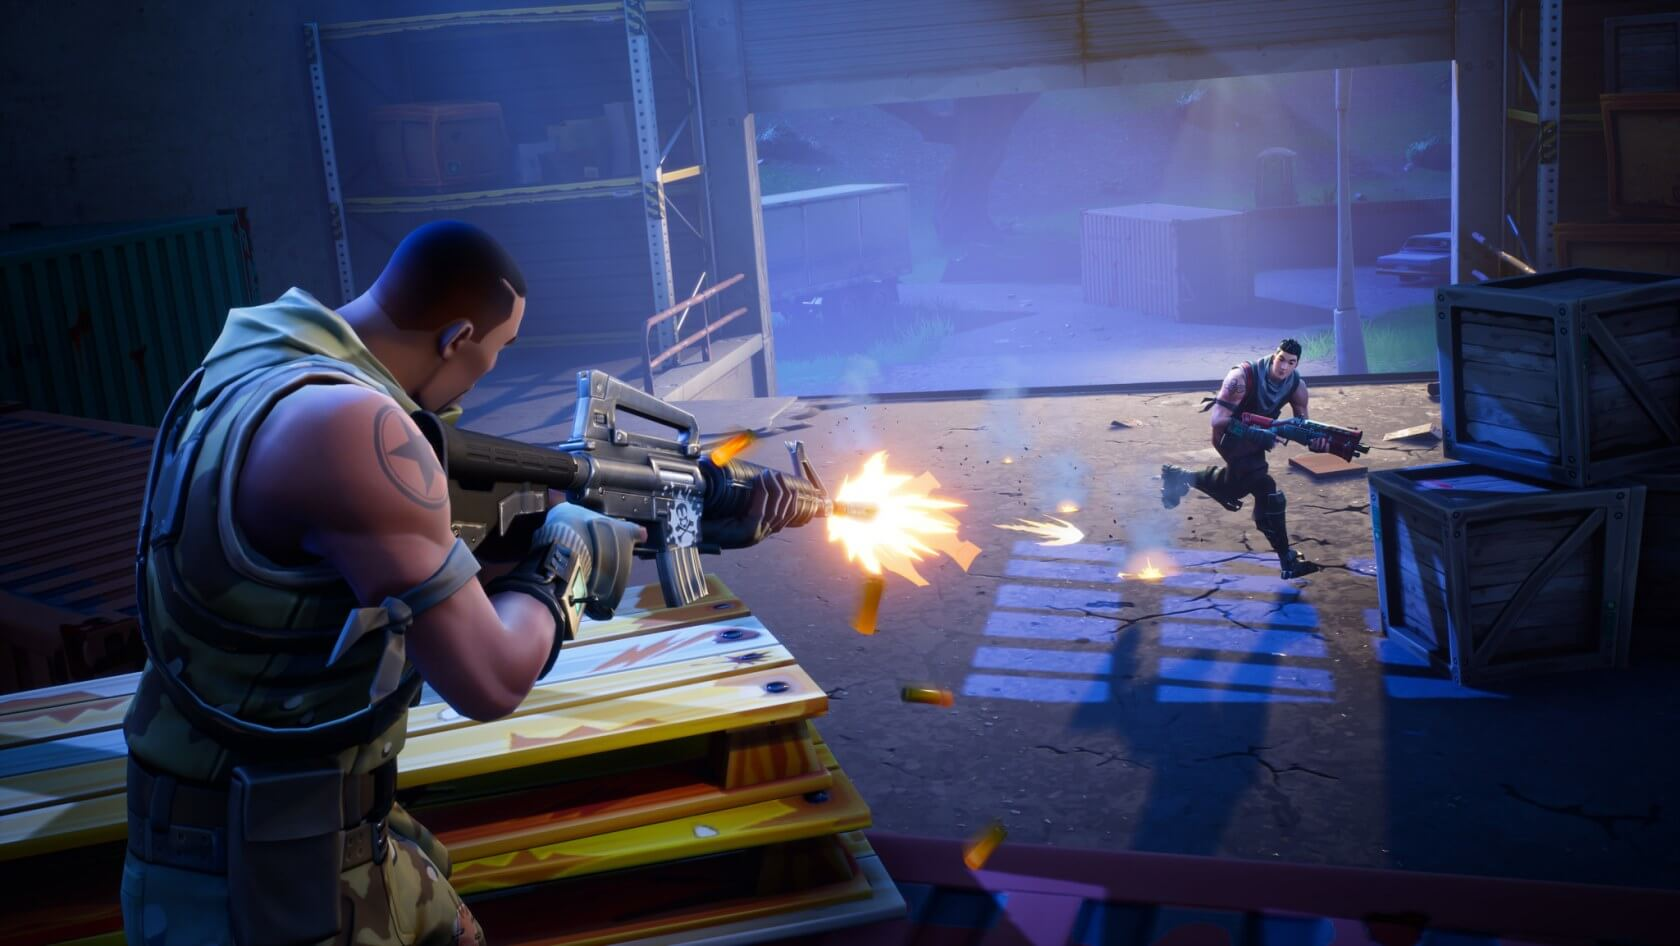 How to see fps on fortnite mobile